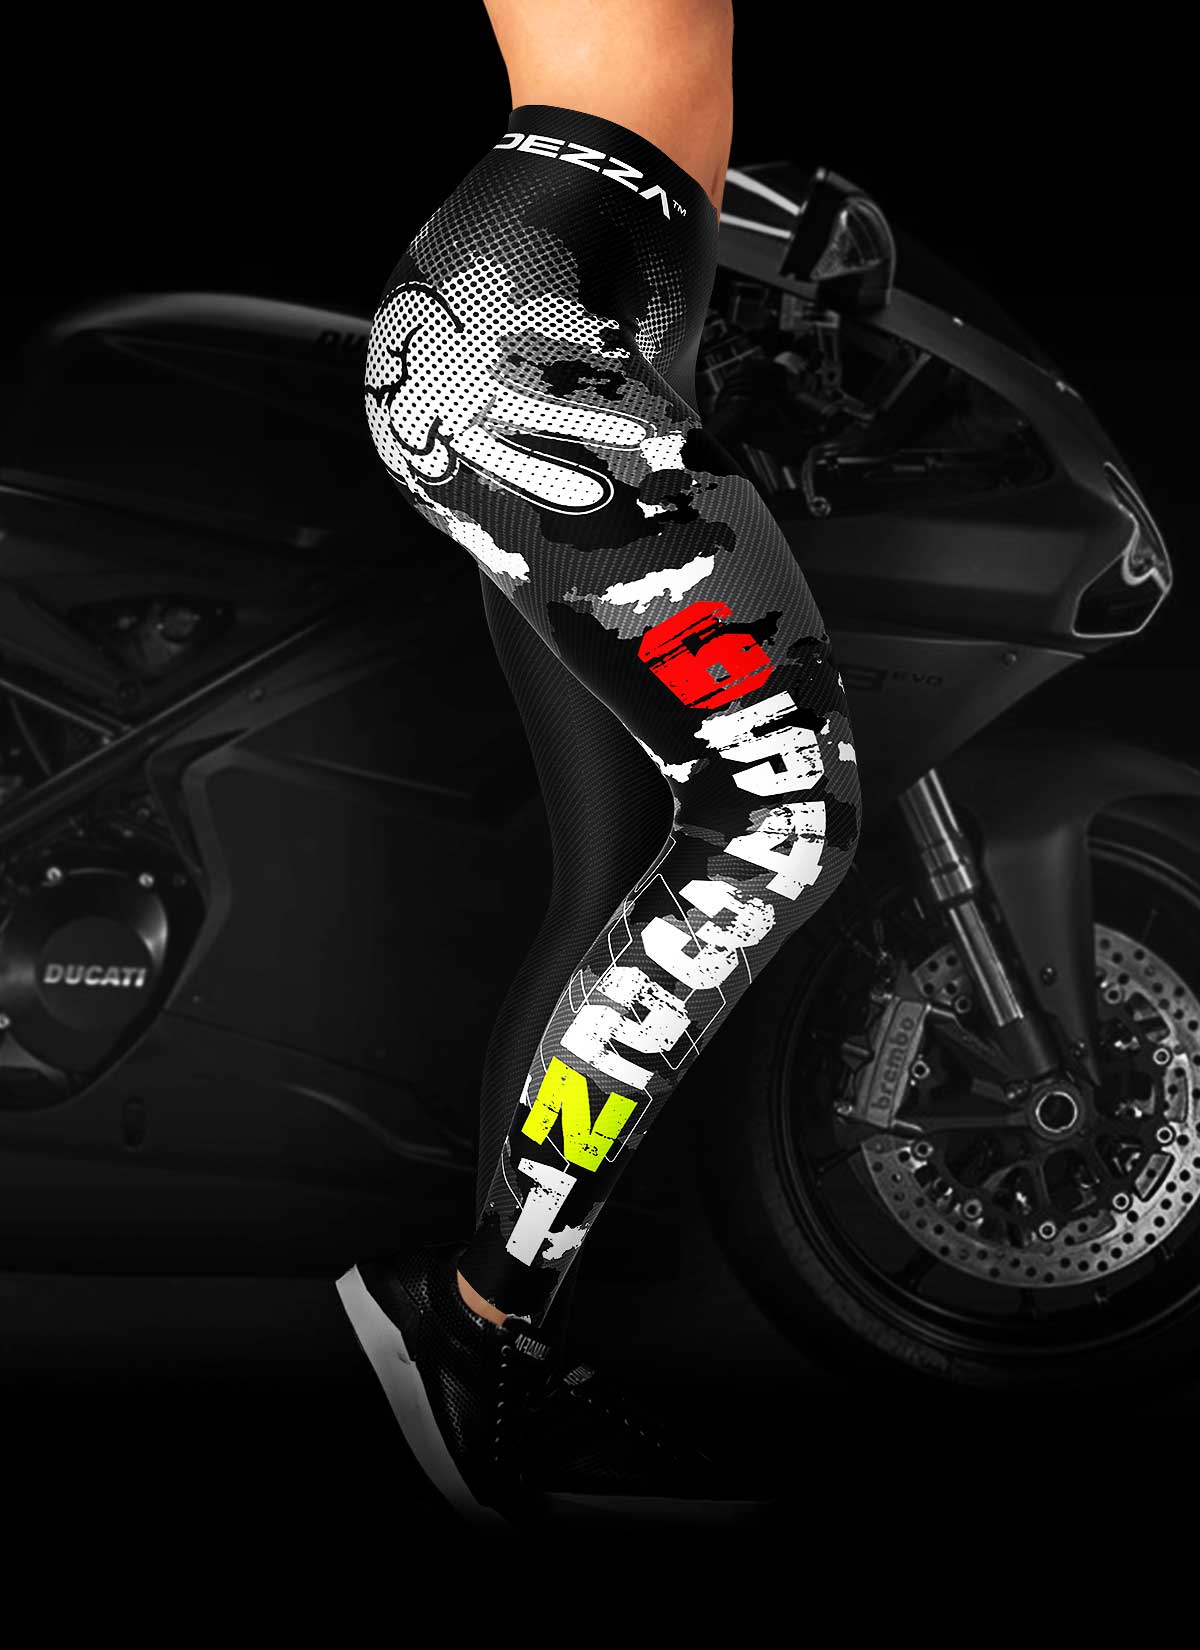 6c72c75efd0c3 Gear Shift 1N23456 Motorcycle Leggings | Ridezza